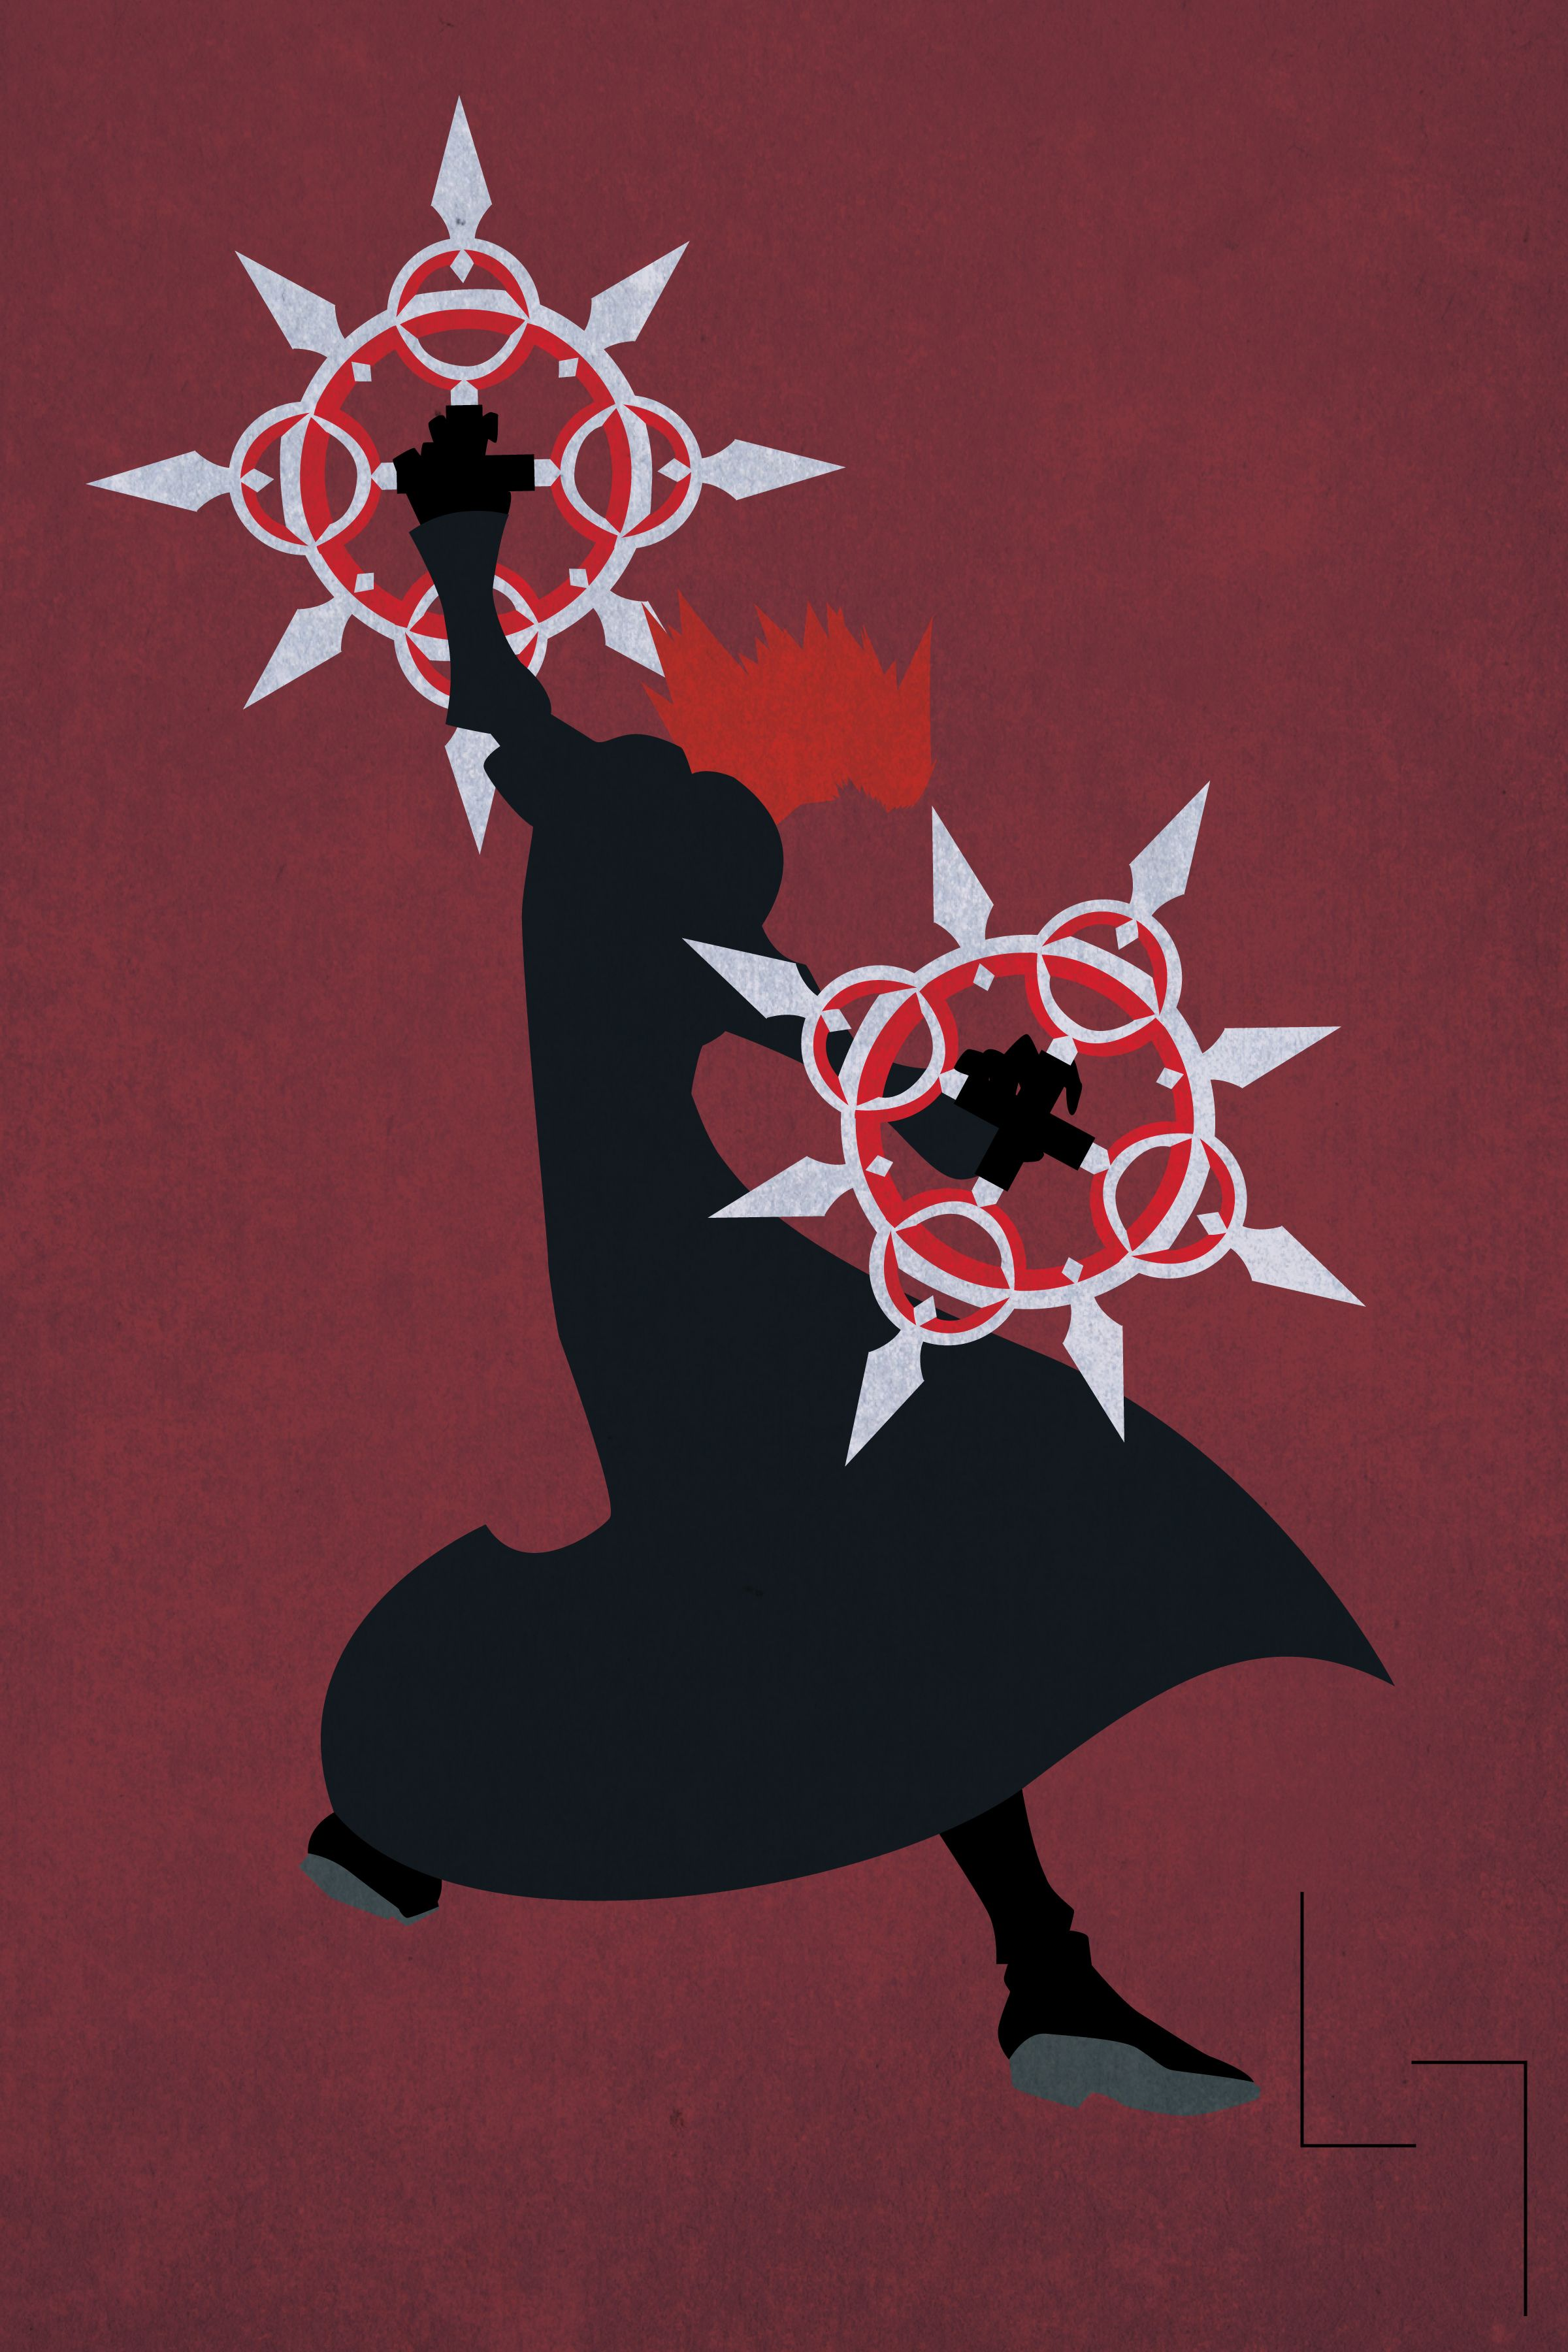 Pin by Leandro Gago on Minimalism Kingdom hearts